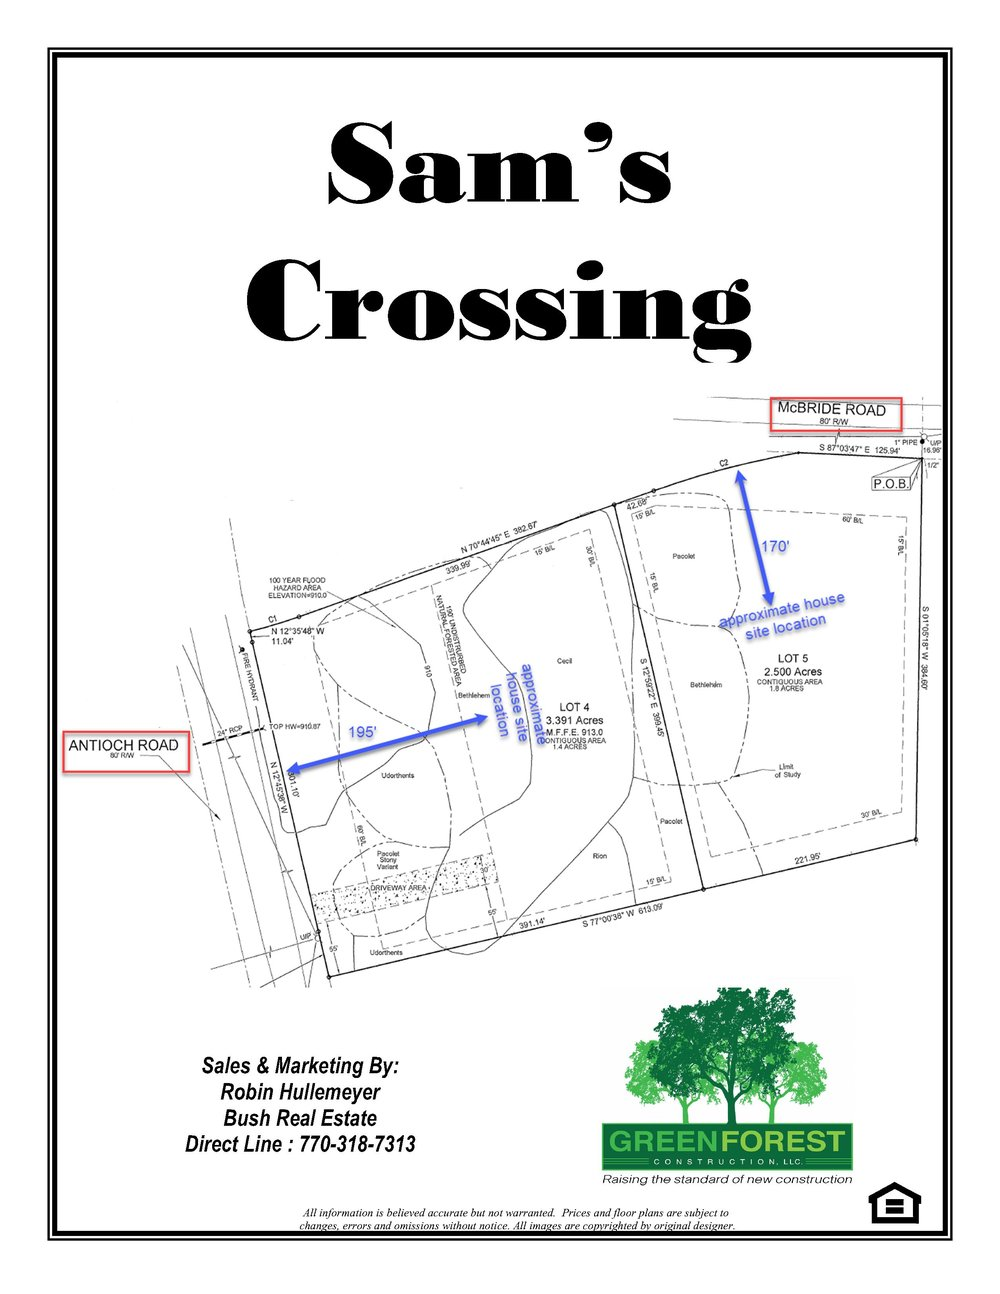 09.11.17 - Sams Crossing Plat 2.jpg